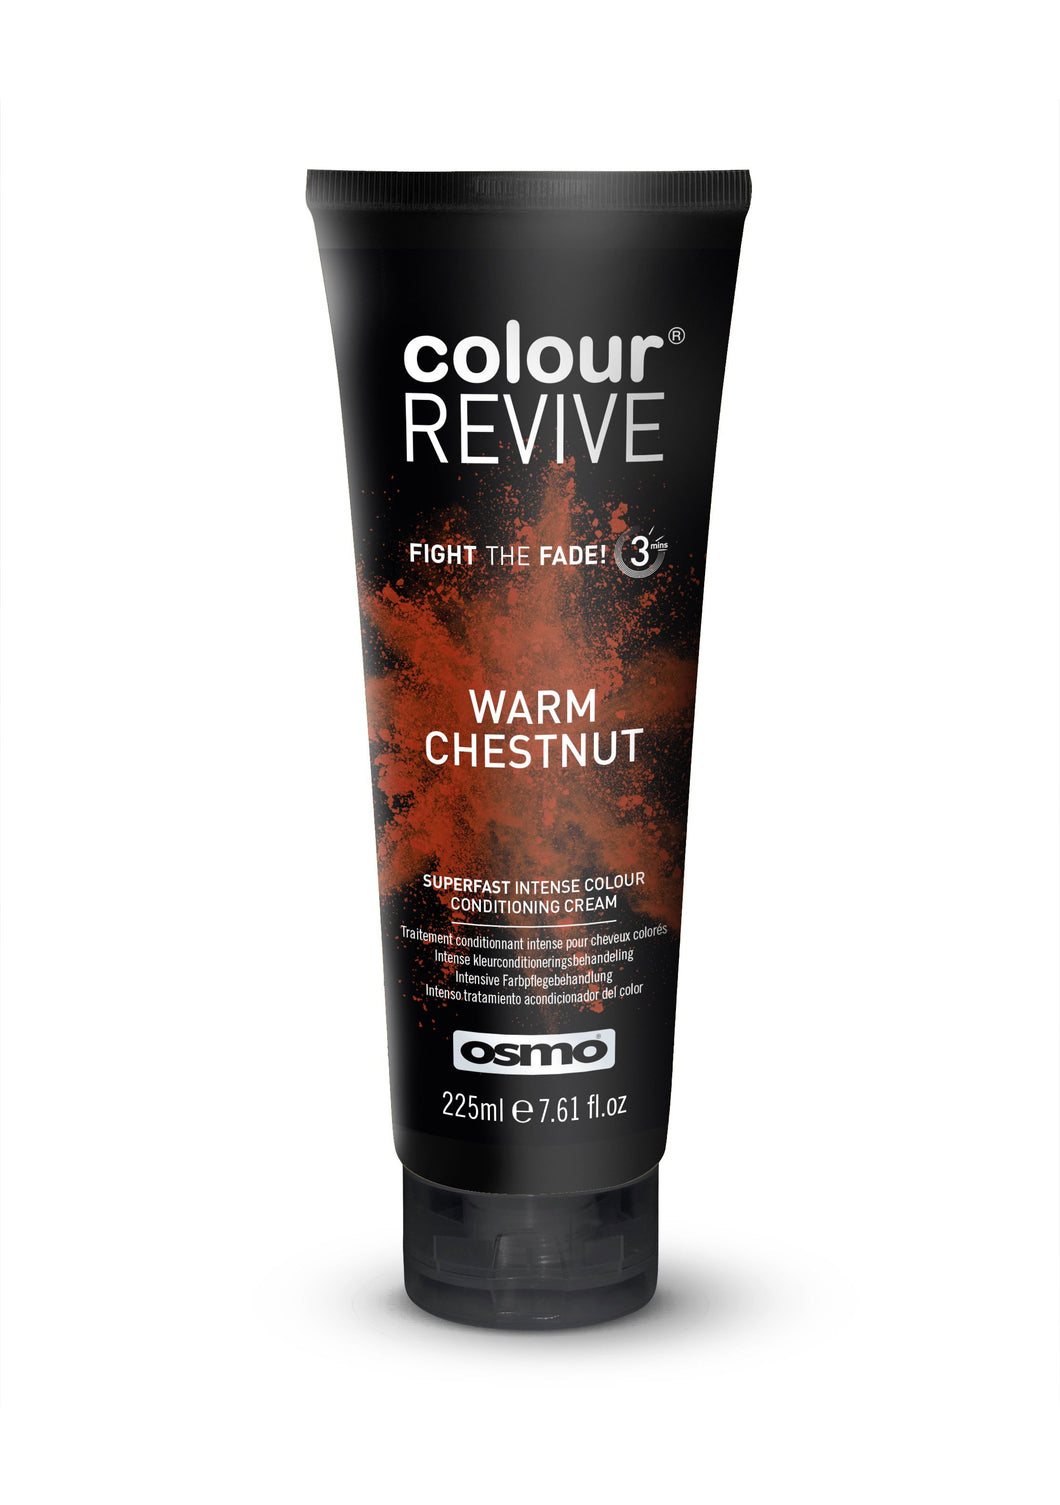 Colour REVIVE Warm Chestnut 225ml